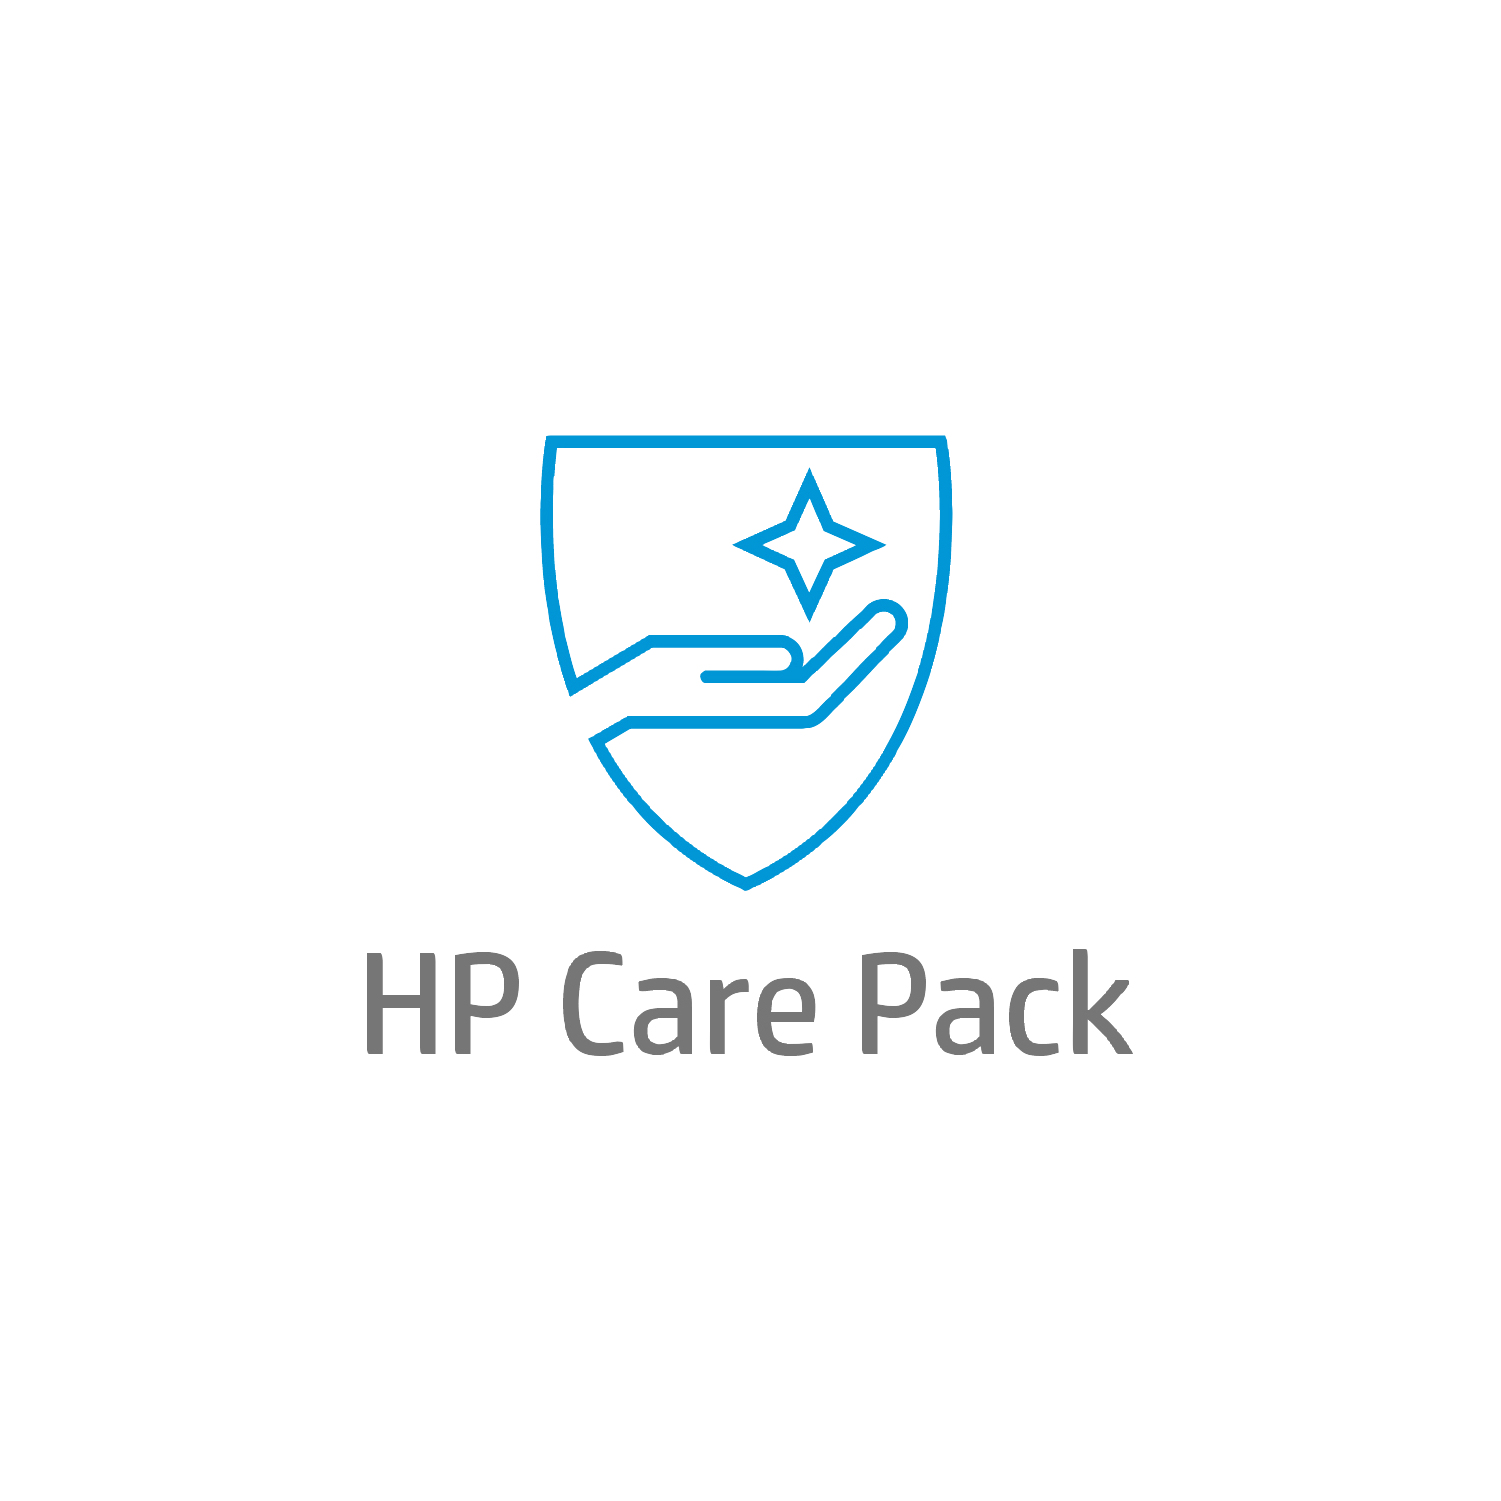 HP 3y AbsoluteDDS Premium 1-2499 Svc,PPS Commercial PCs,3 Year Customer Base Multiple Units Support Premium Professional And STD Svc Support Corporate Education Healthcare U8UL1E - C2000